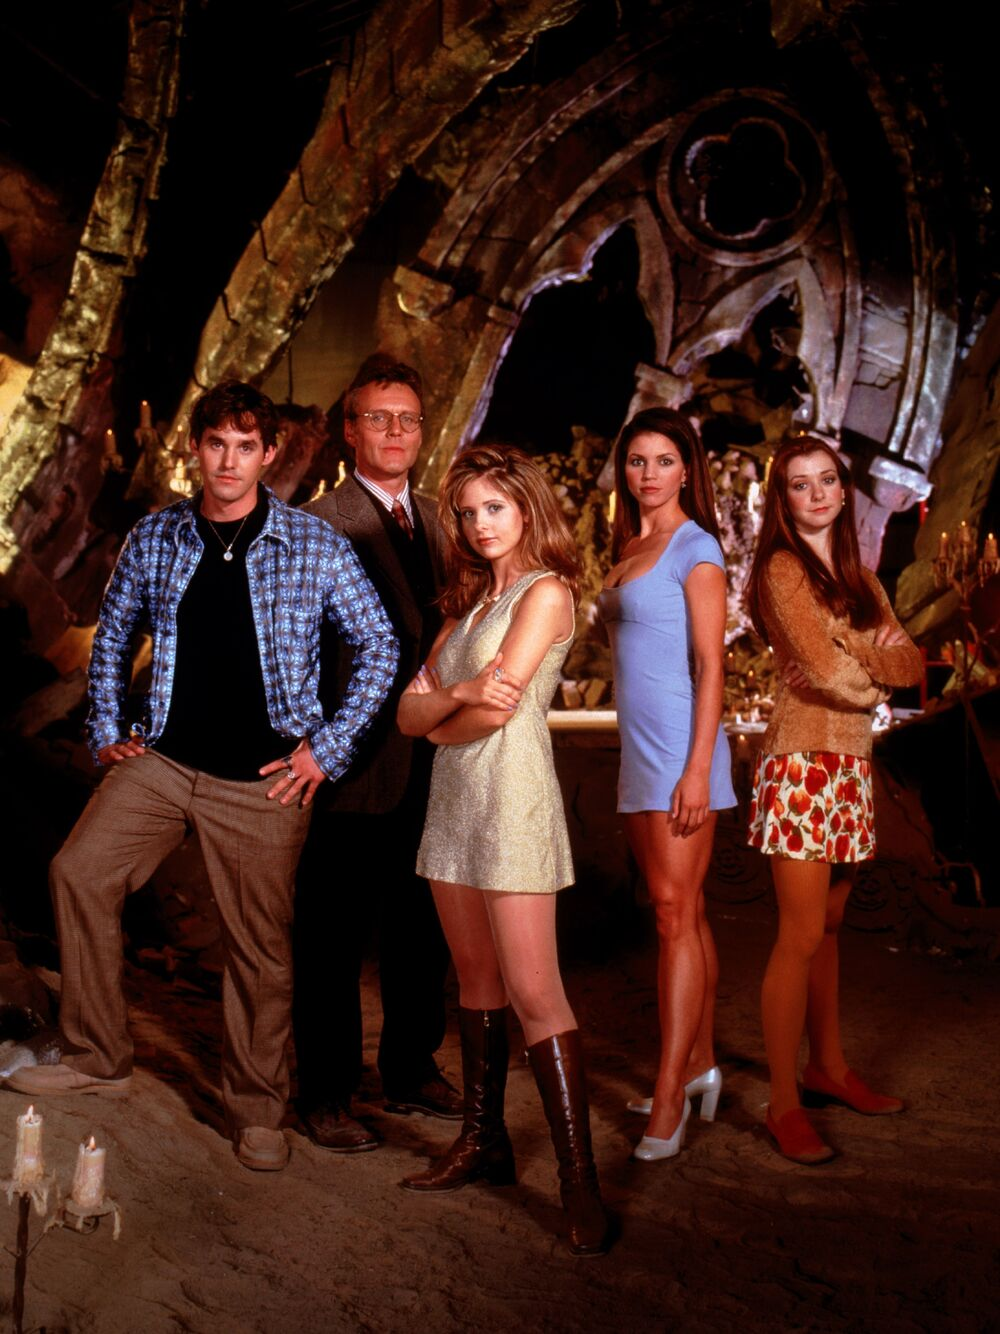 Promotional Photo from Season 1 of Buffy the Vampire Slayer, showing , Xander, Giles, Buffy, Cordelia, and Willow.